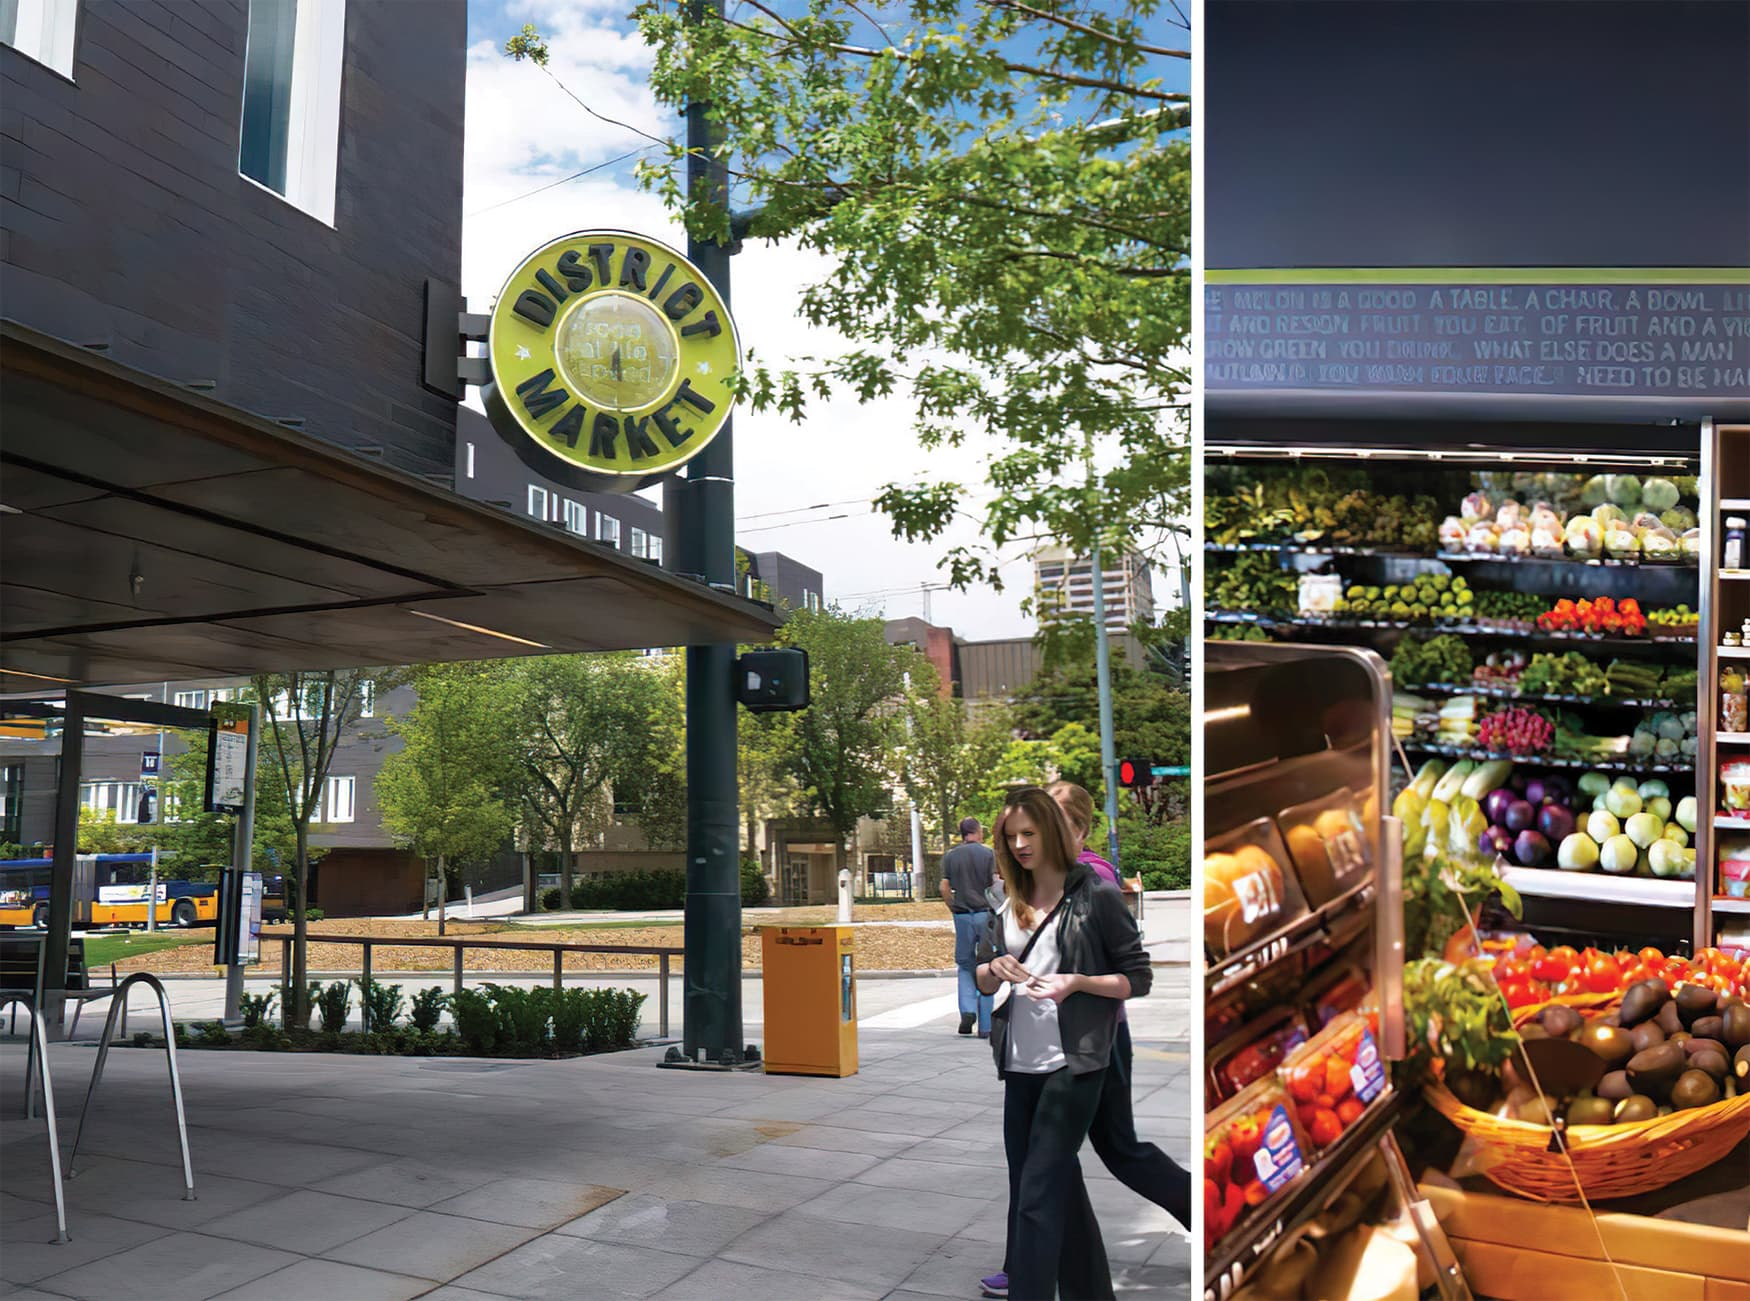 District Market, a student market located by the University of Washington's campus. Signage Design.